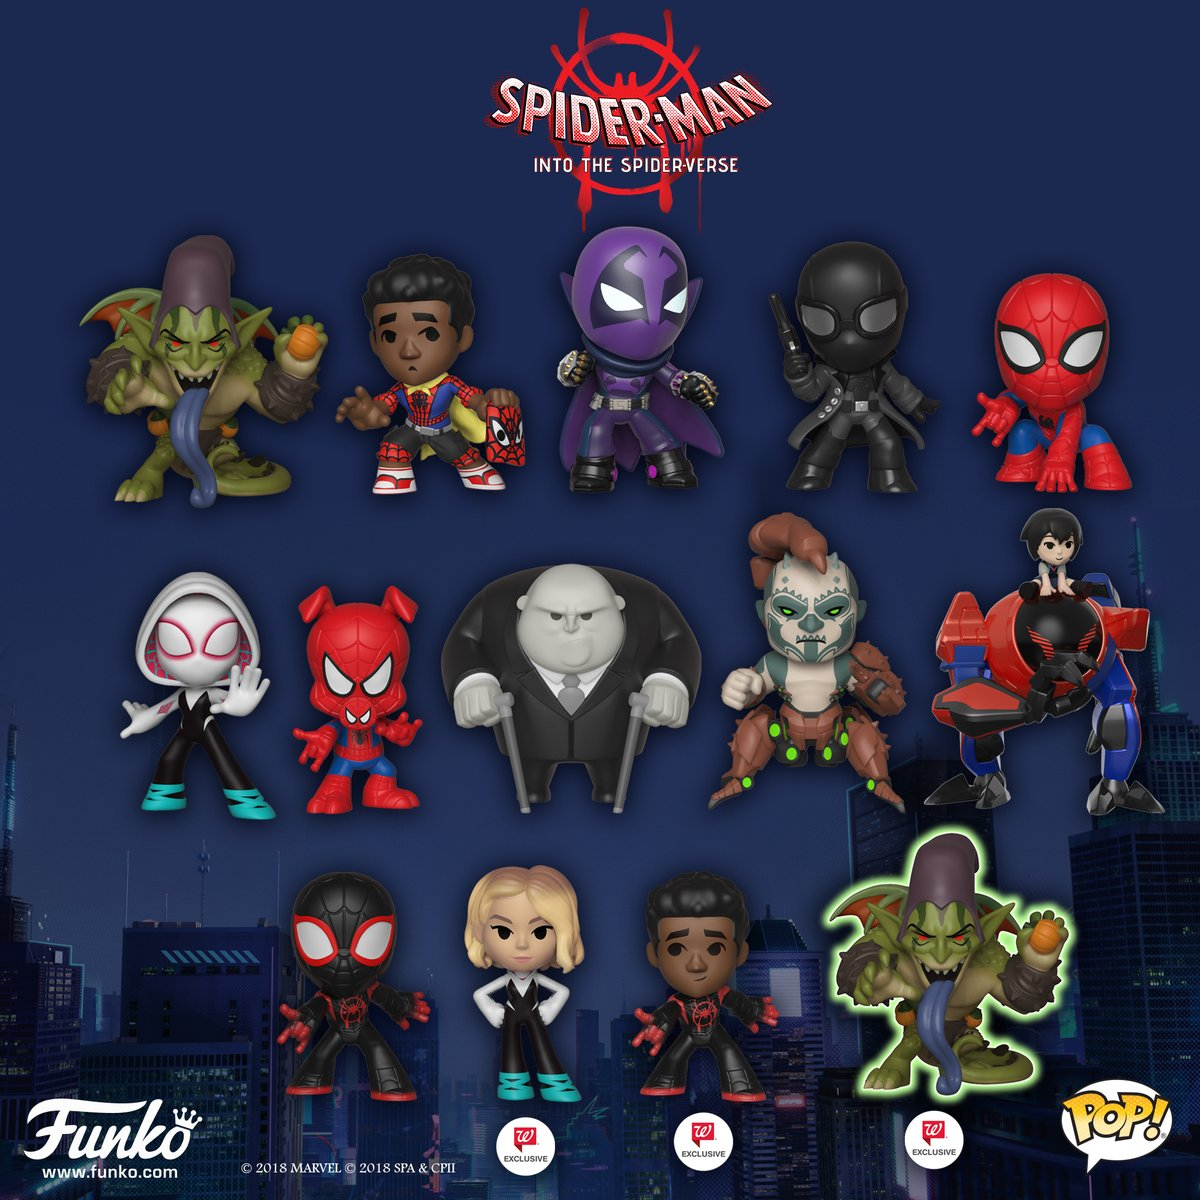 The Blot Says Spider Man Into The Spider Verse Mystery Minis